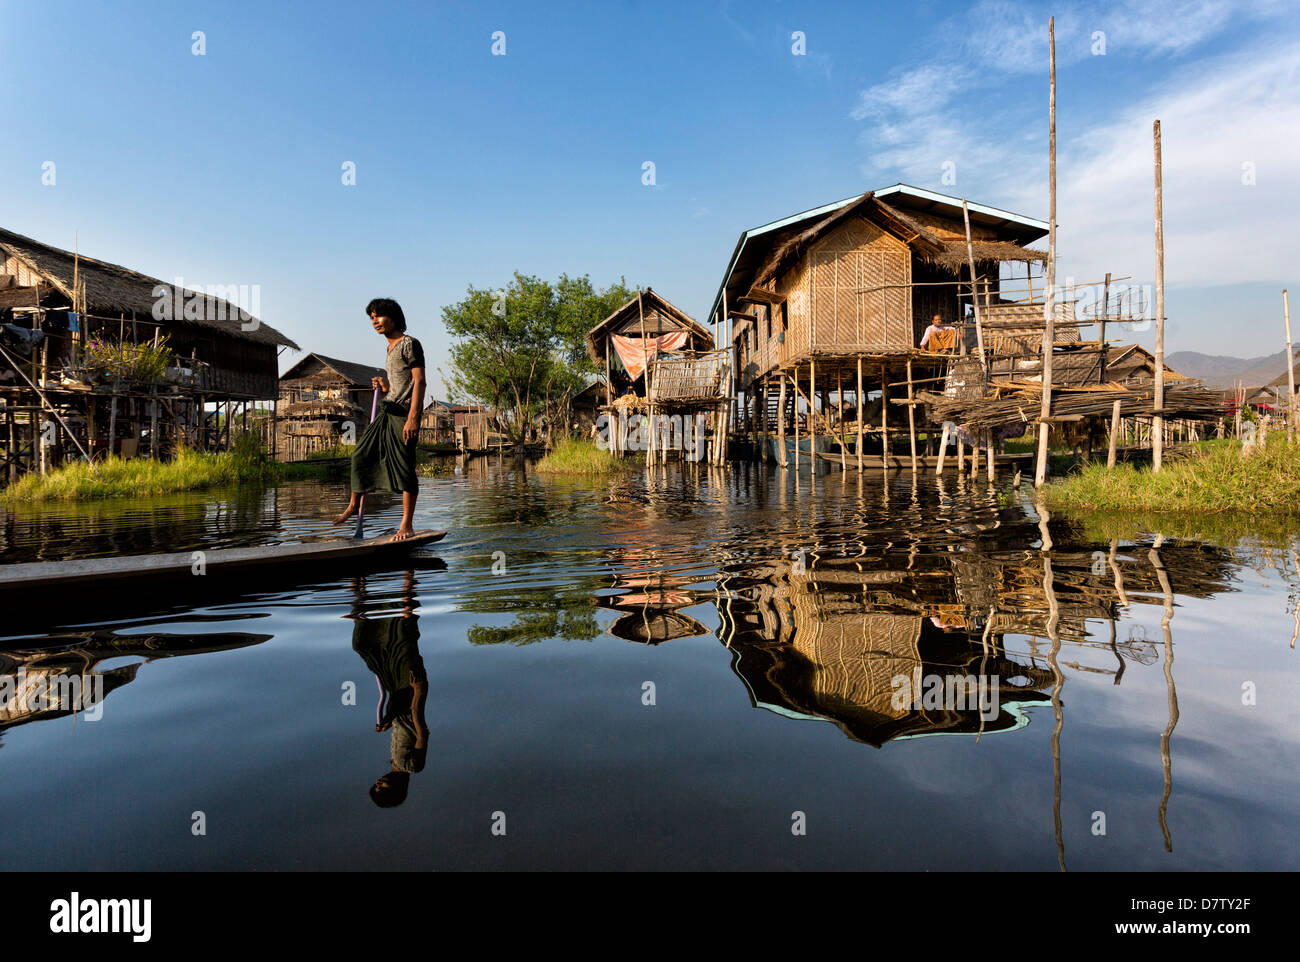 Houses built on stilts in the village of Nampan on the edge of Inle Lake, Shan State, Burma - Stock Image